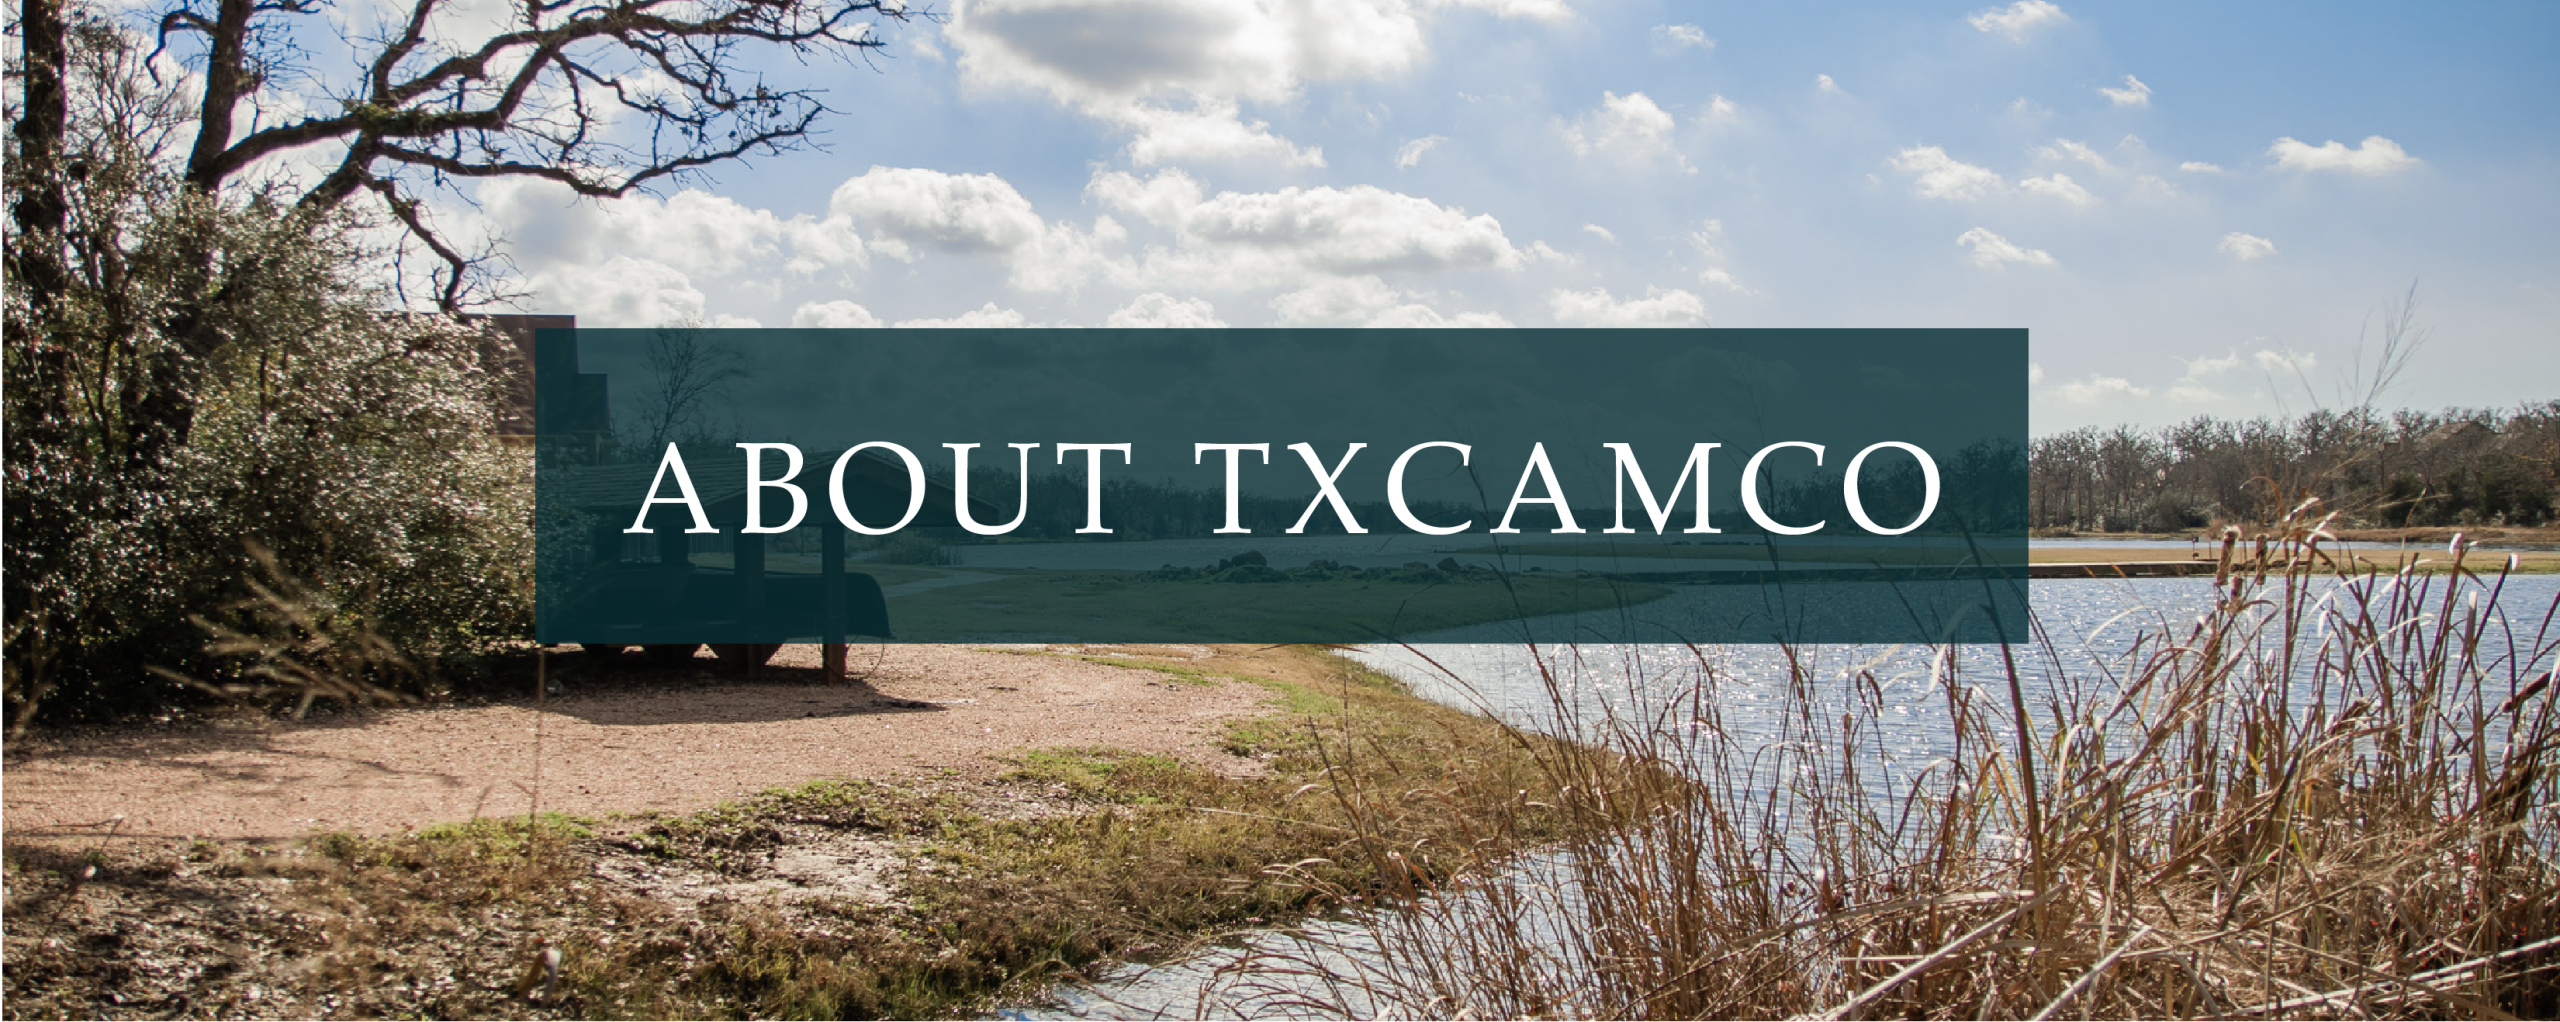 College Station Community Management Company TXCAMCO